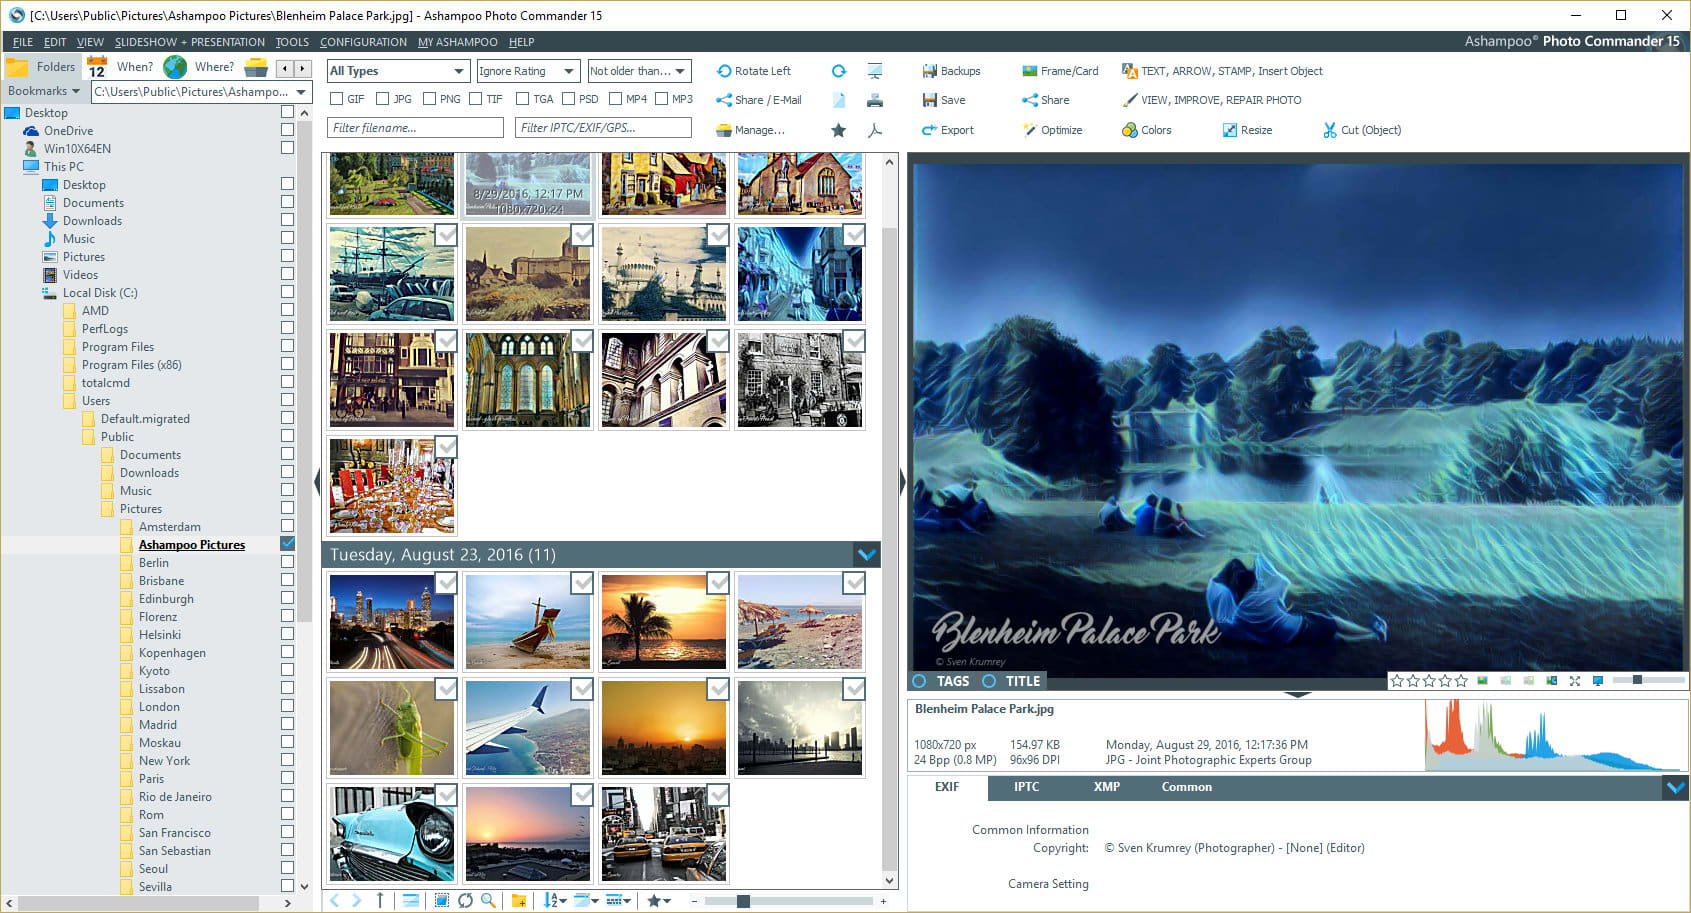 Ashampoo Photo Commander 16.0.1